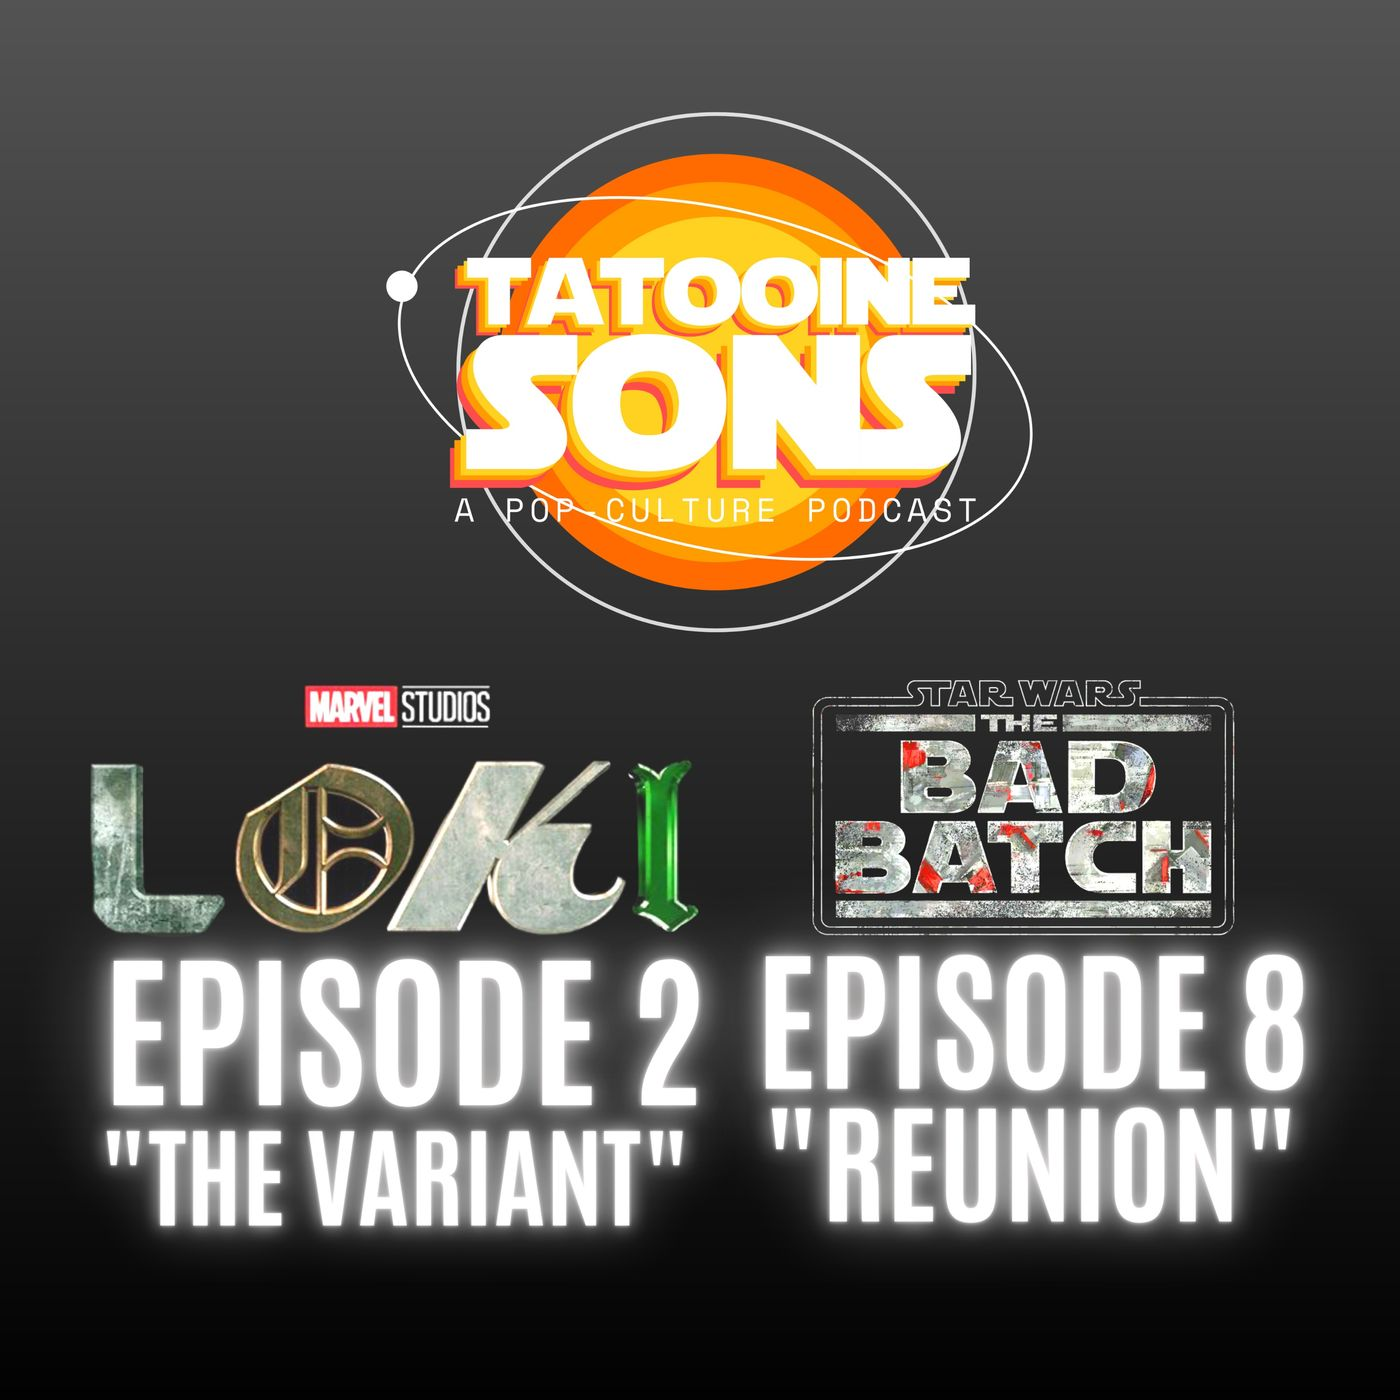 """The Bad Batch Episode 8 """"Reunion"""" Reaction 